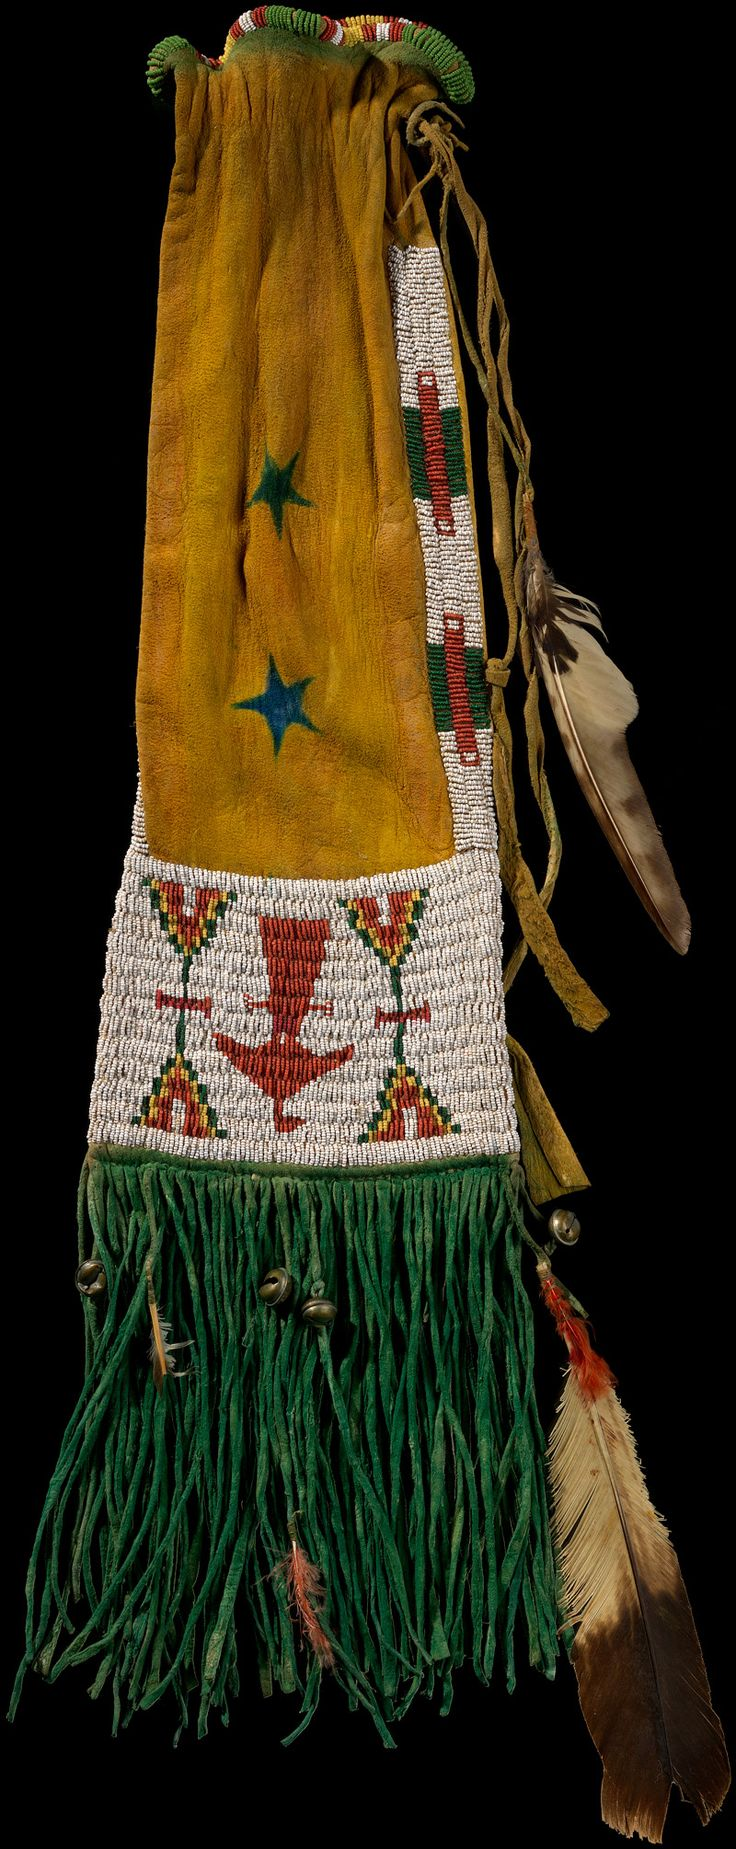 The best images about american indian made jewelry art u misc